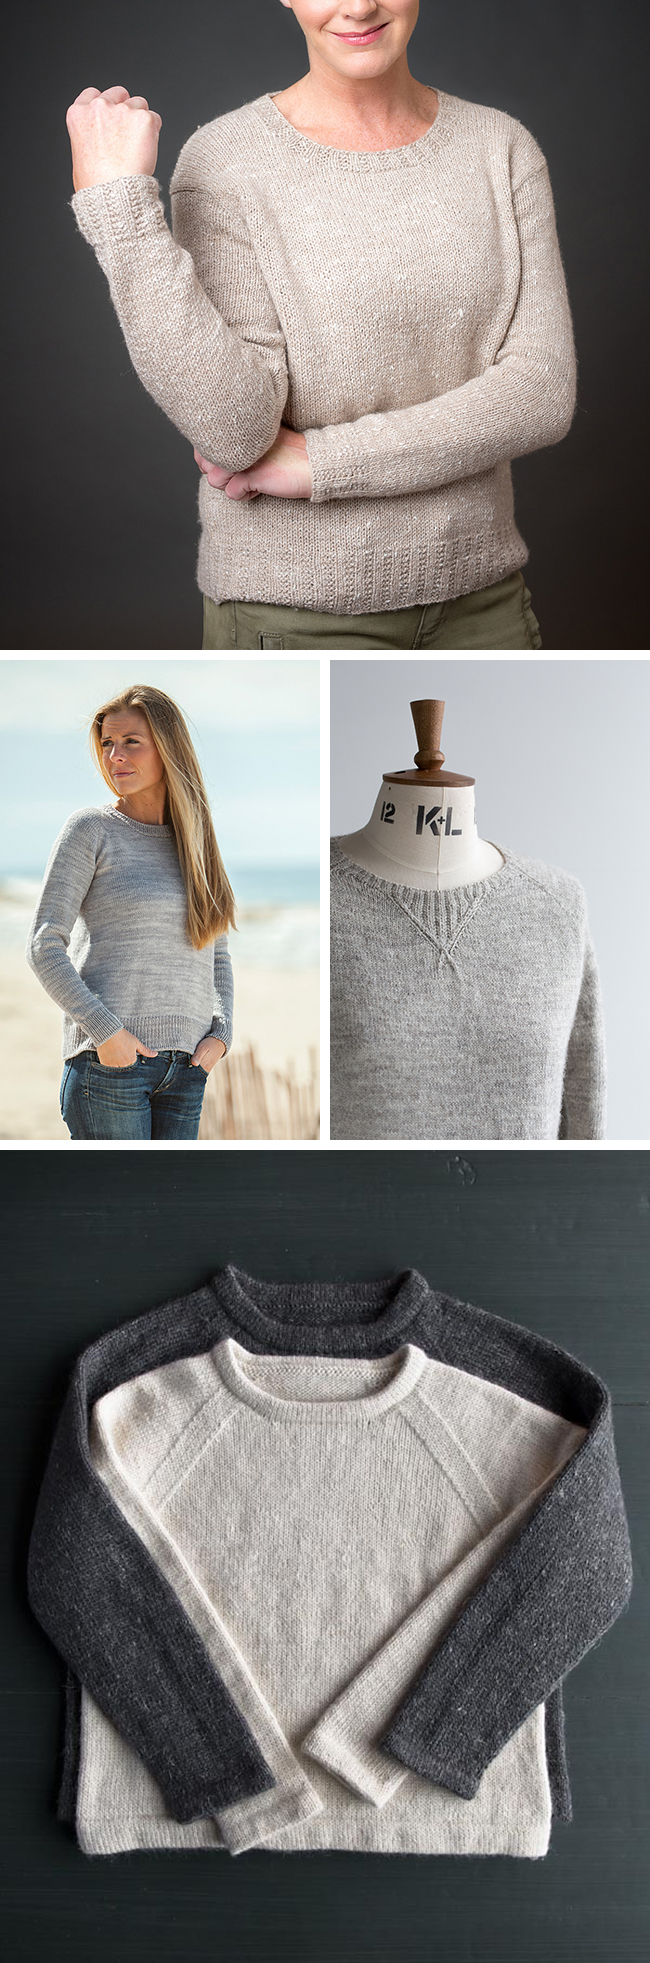 Make Your Own Basics: The pullover